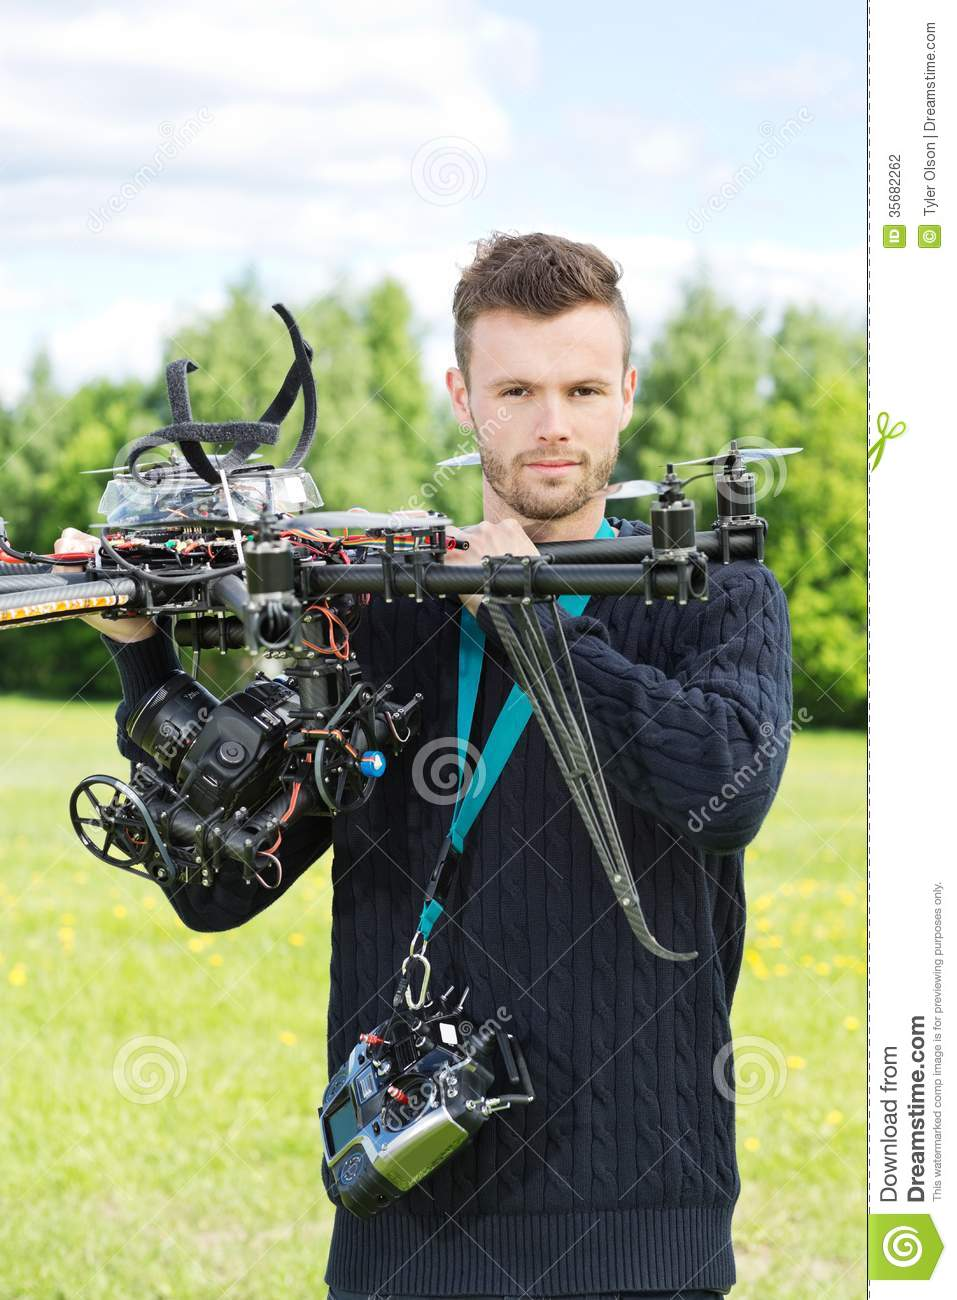 Male Engineer Holding UAV Helicopter in Park